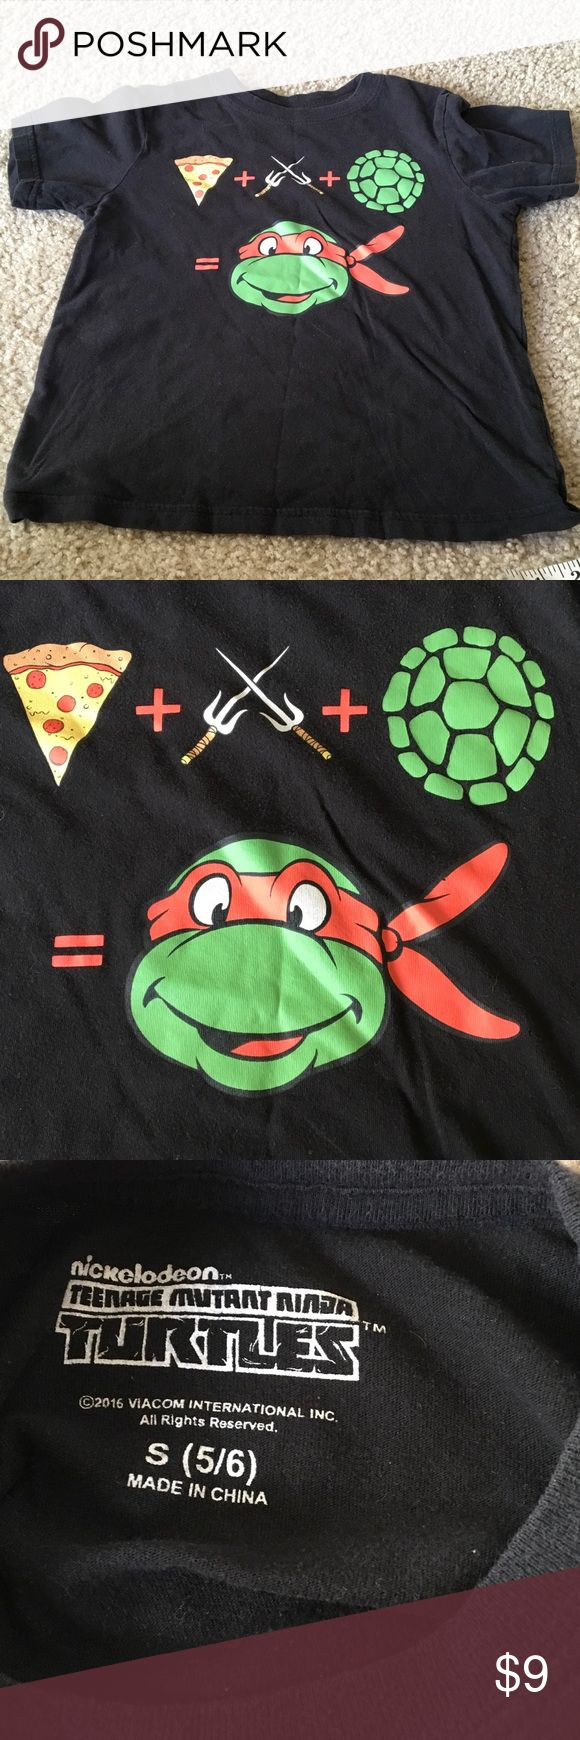 """NIckelodeon NINJA TURTLE TEE 🍕SMALL 5/6 cotton 🐢 NICKELODEON Solid black tee w NINJA pizza turtle, pizza & shell on front design. All intact. 💯% cotton and super soft. BLACK faded some IB+ condition. SMALL 5/6......14 3/4"""" underarm to underarm laying flat......18"""" top to bottom hem. 🐢🍕🐢🍕🐢🍕🐢🍕🐢🍕🐢🍕🐢🍕🐢🍕🐢🍕🐢 Nickelodeon Shirts & Tops Tees - Short Sleeve"""